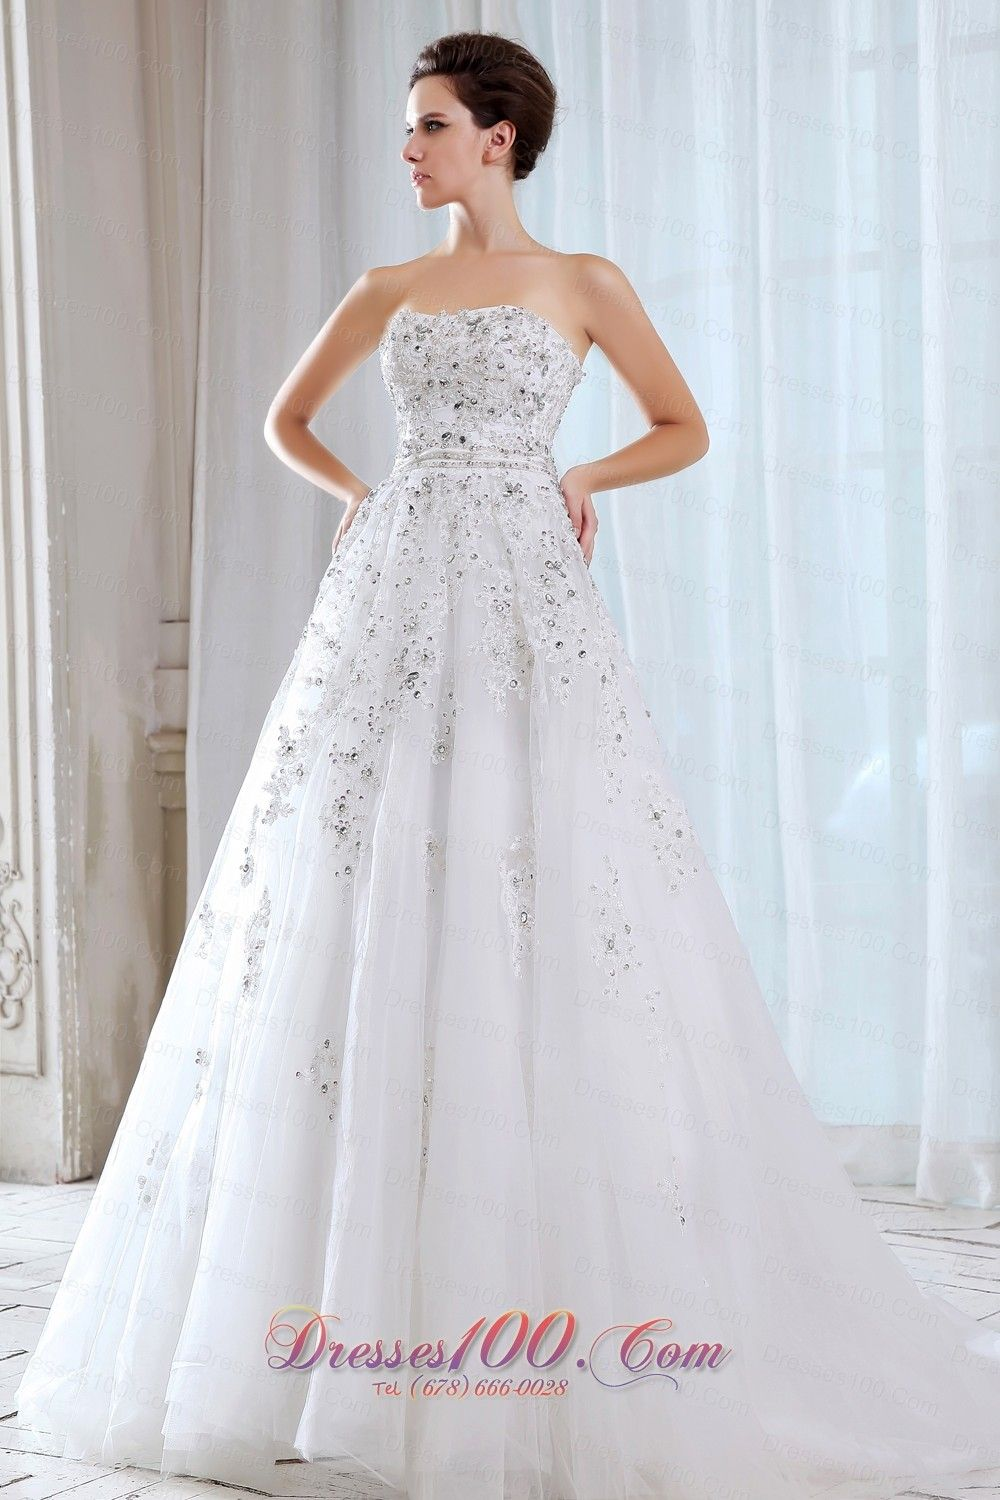 The Master wedding dress in Fredericton Cheap wedding dress,discount ...